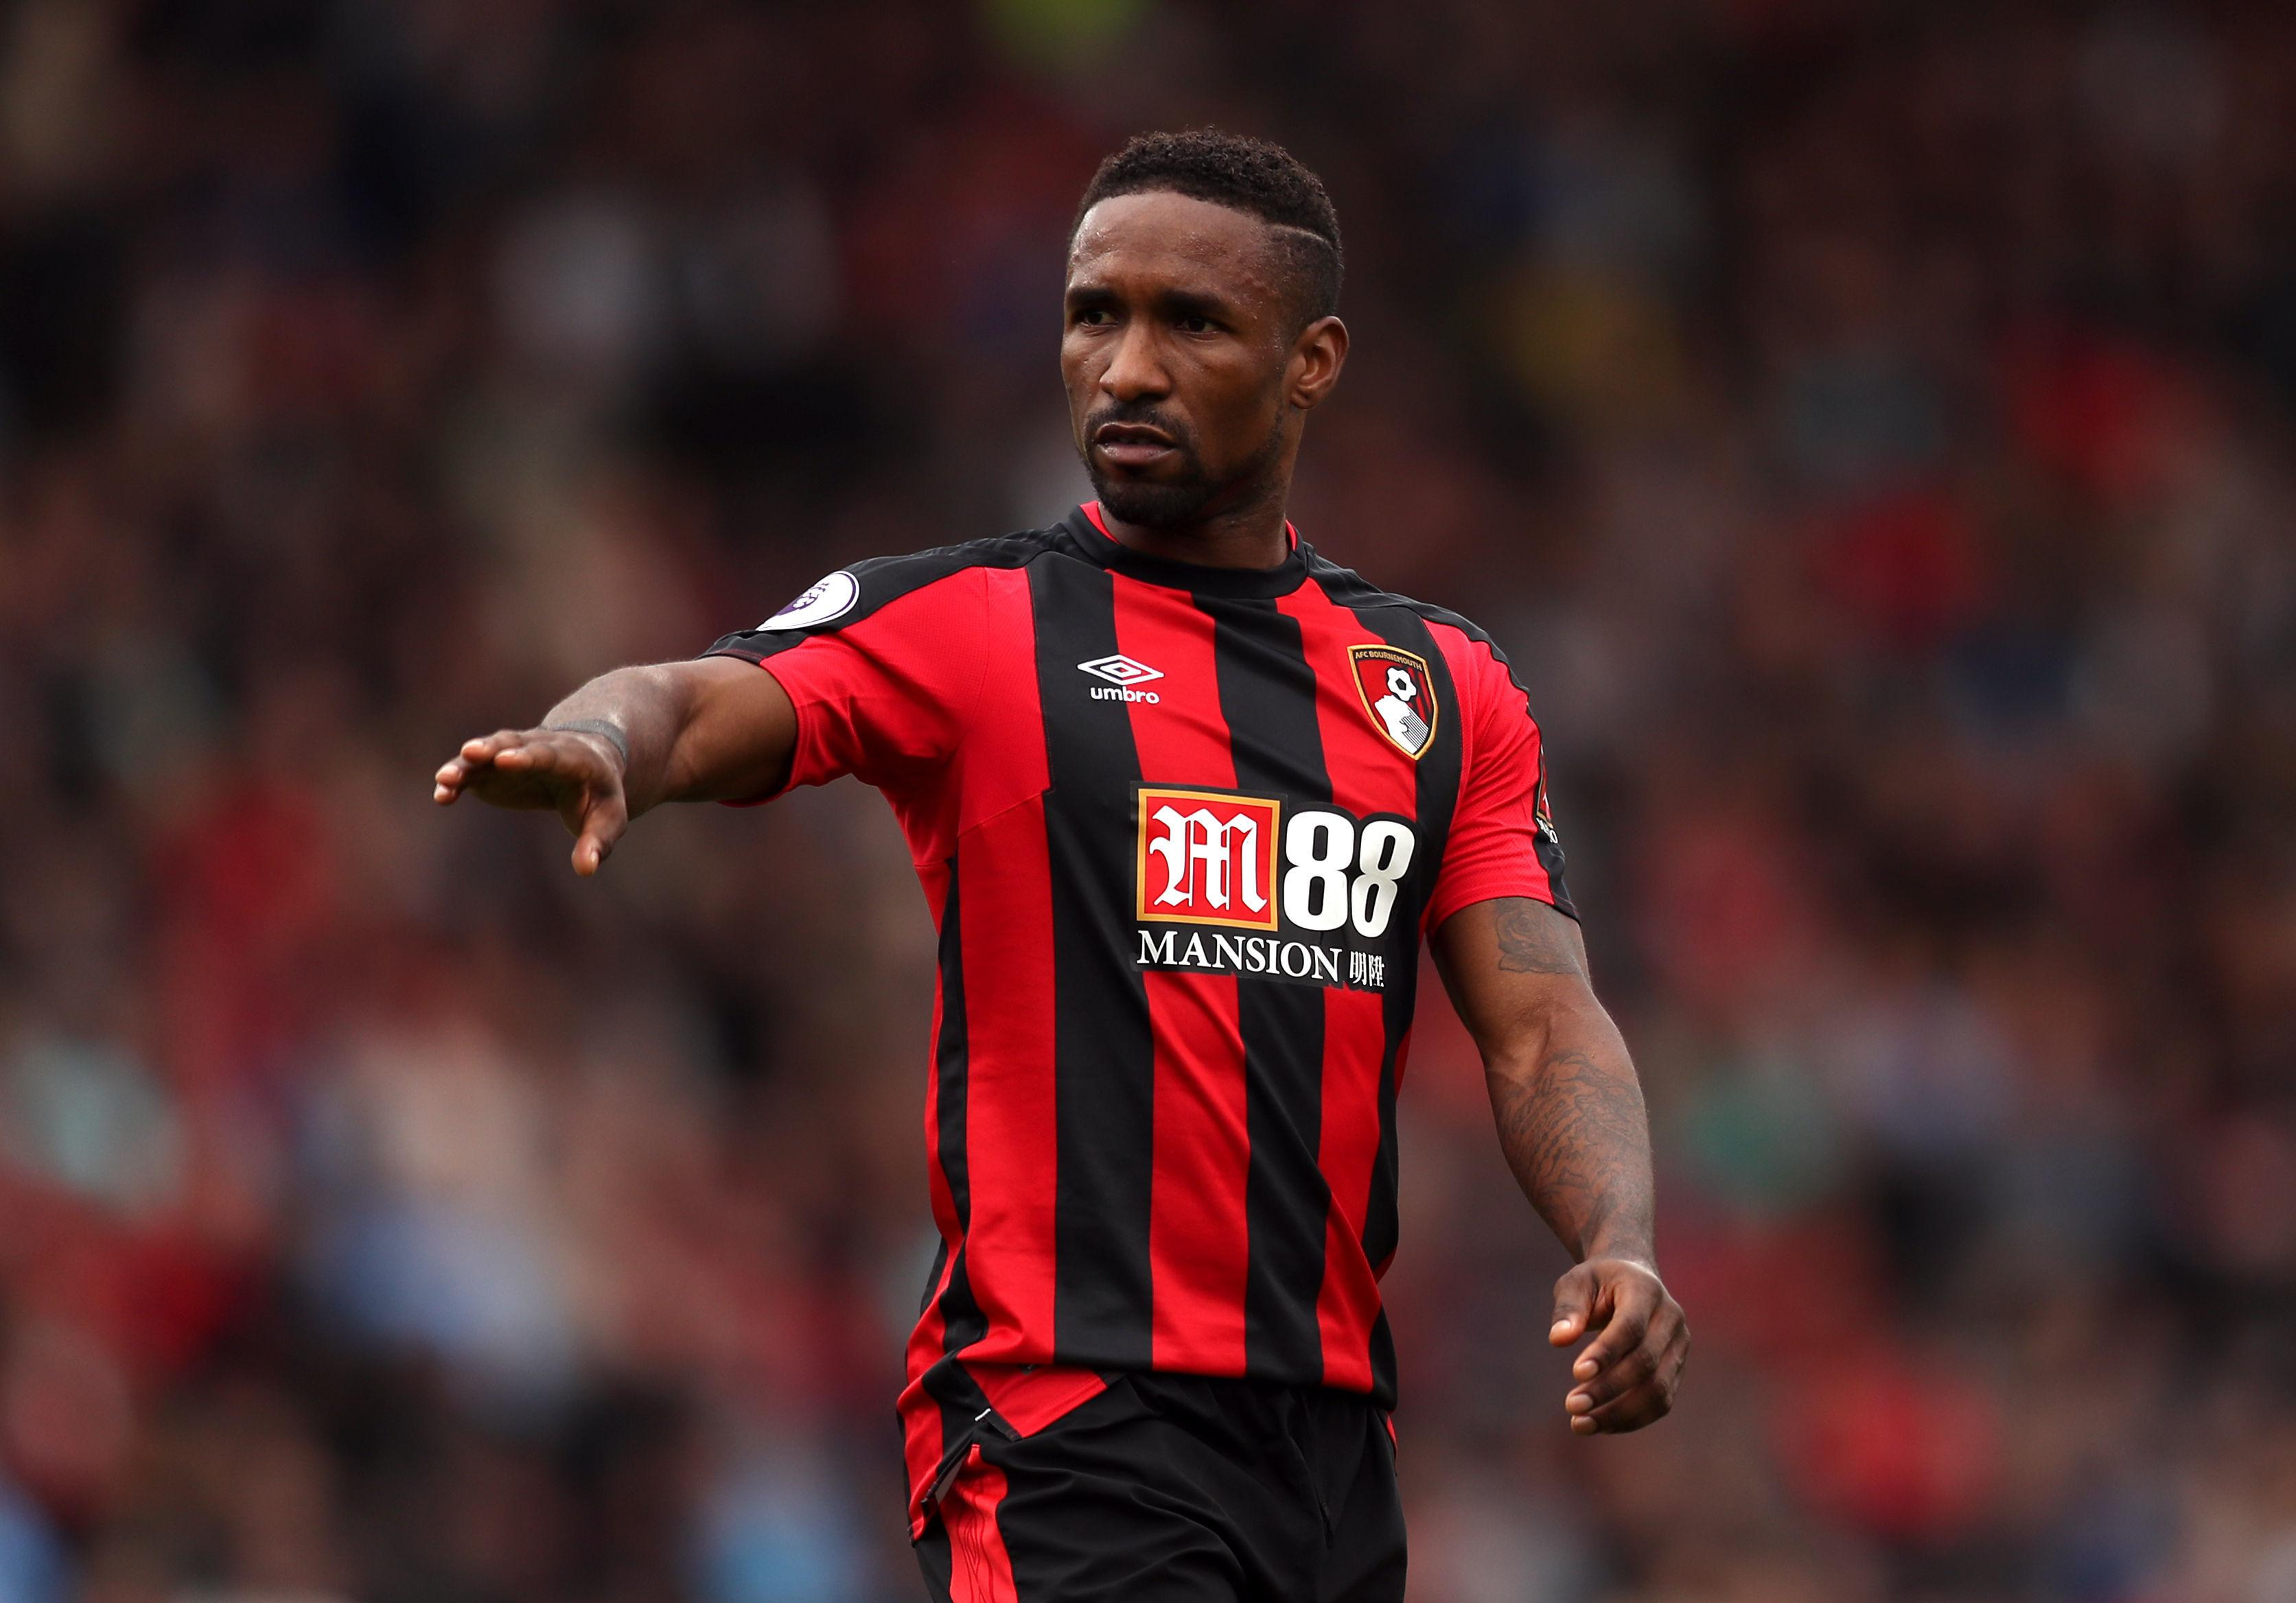 Defoe will be hoping to jump at least one place higher himself